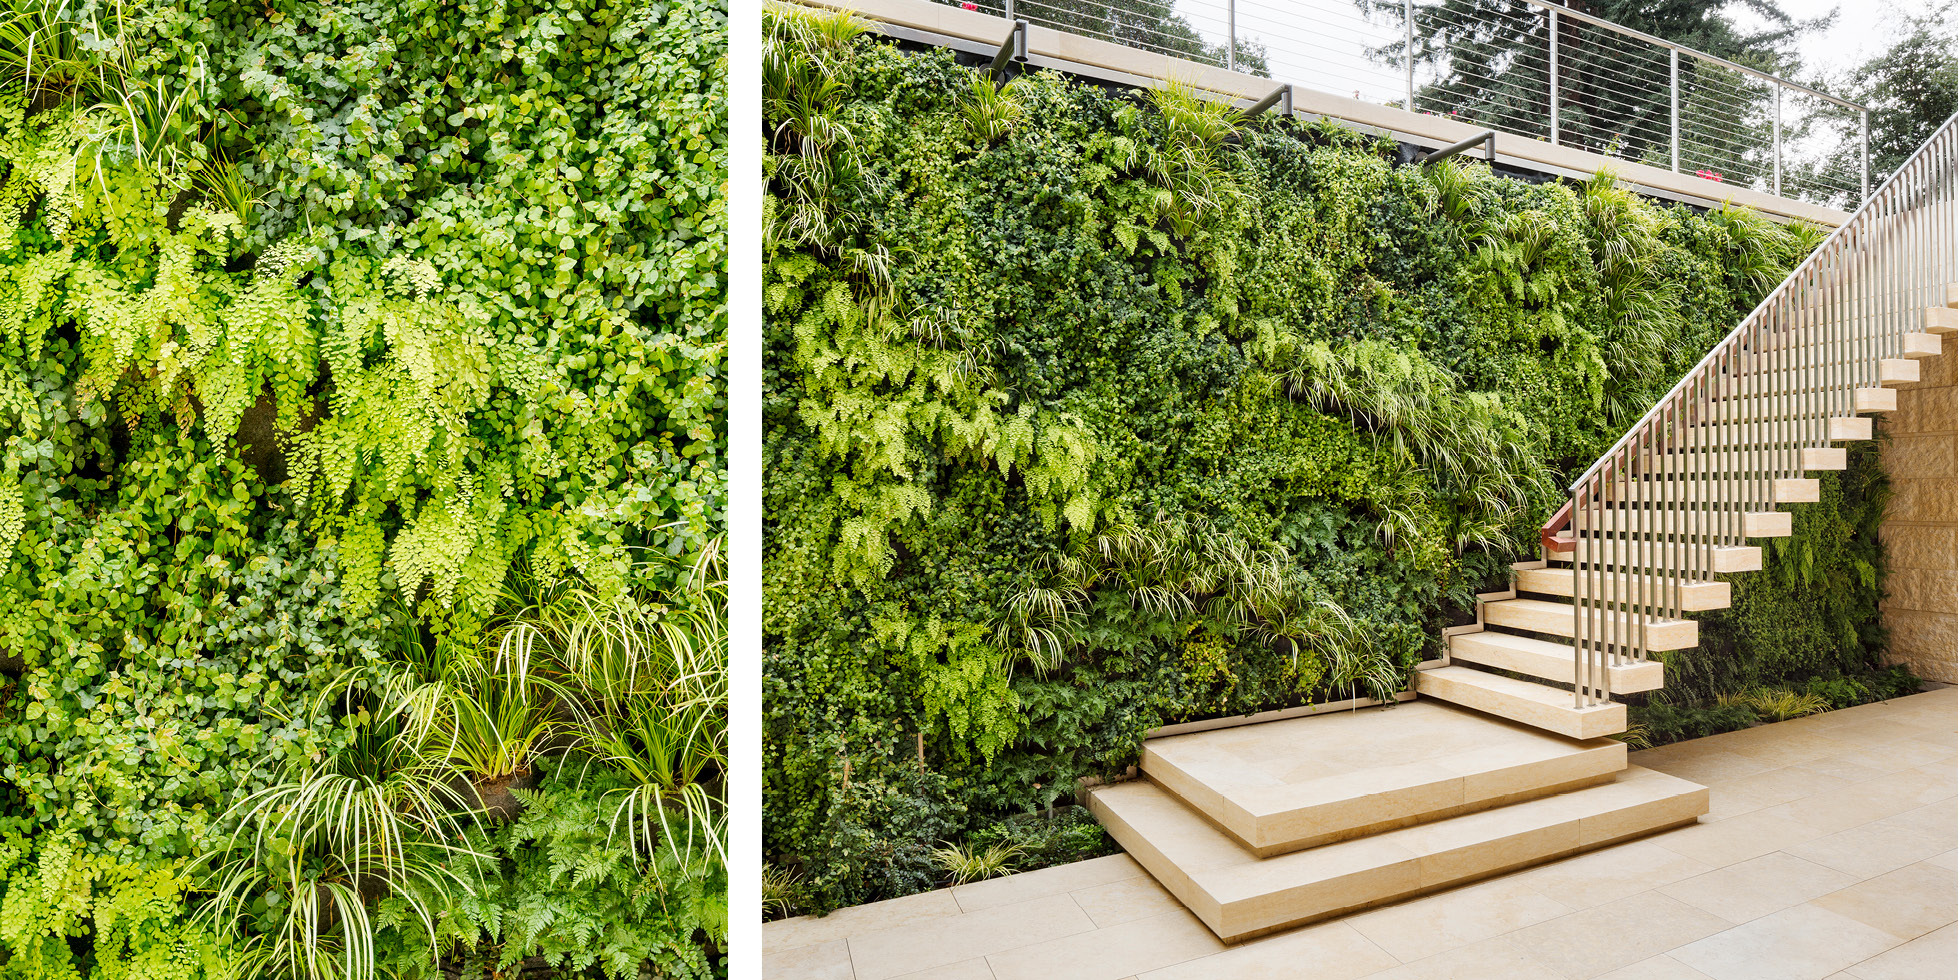 Atherton Residence Living Wall by Habitat Horticulture - View 2